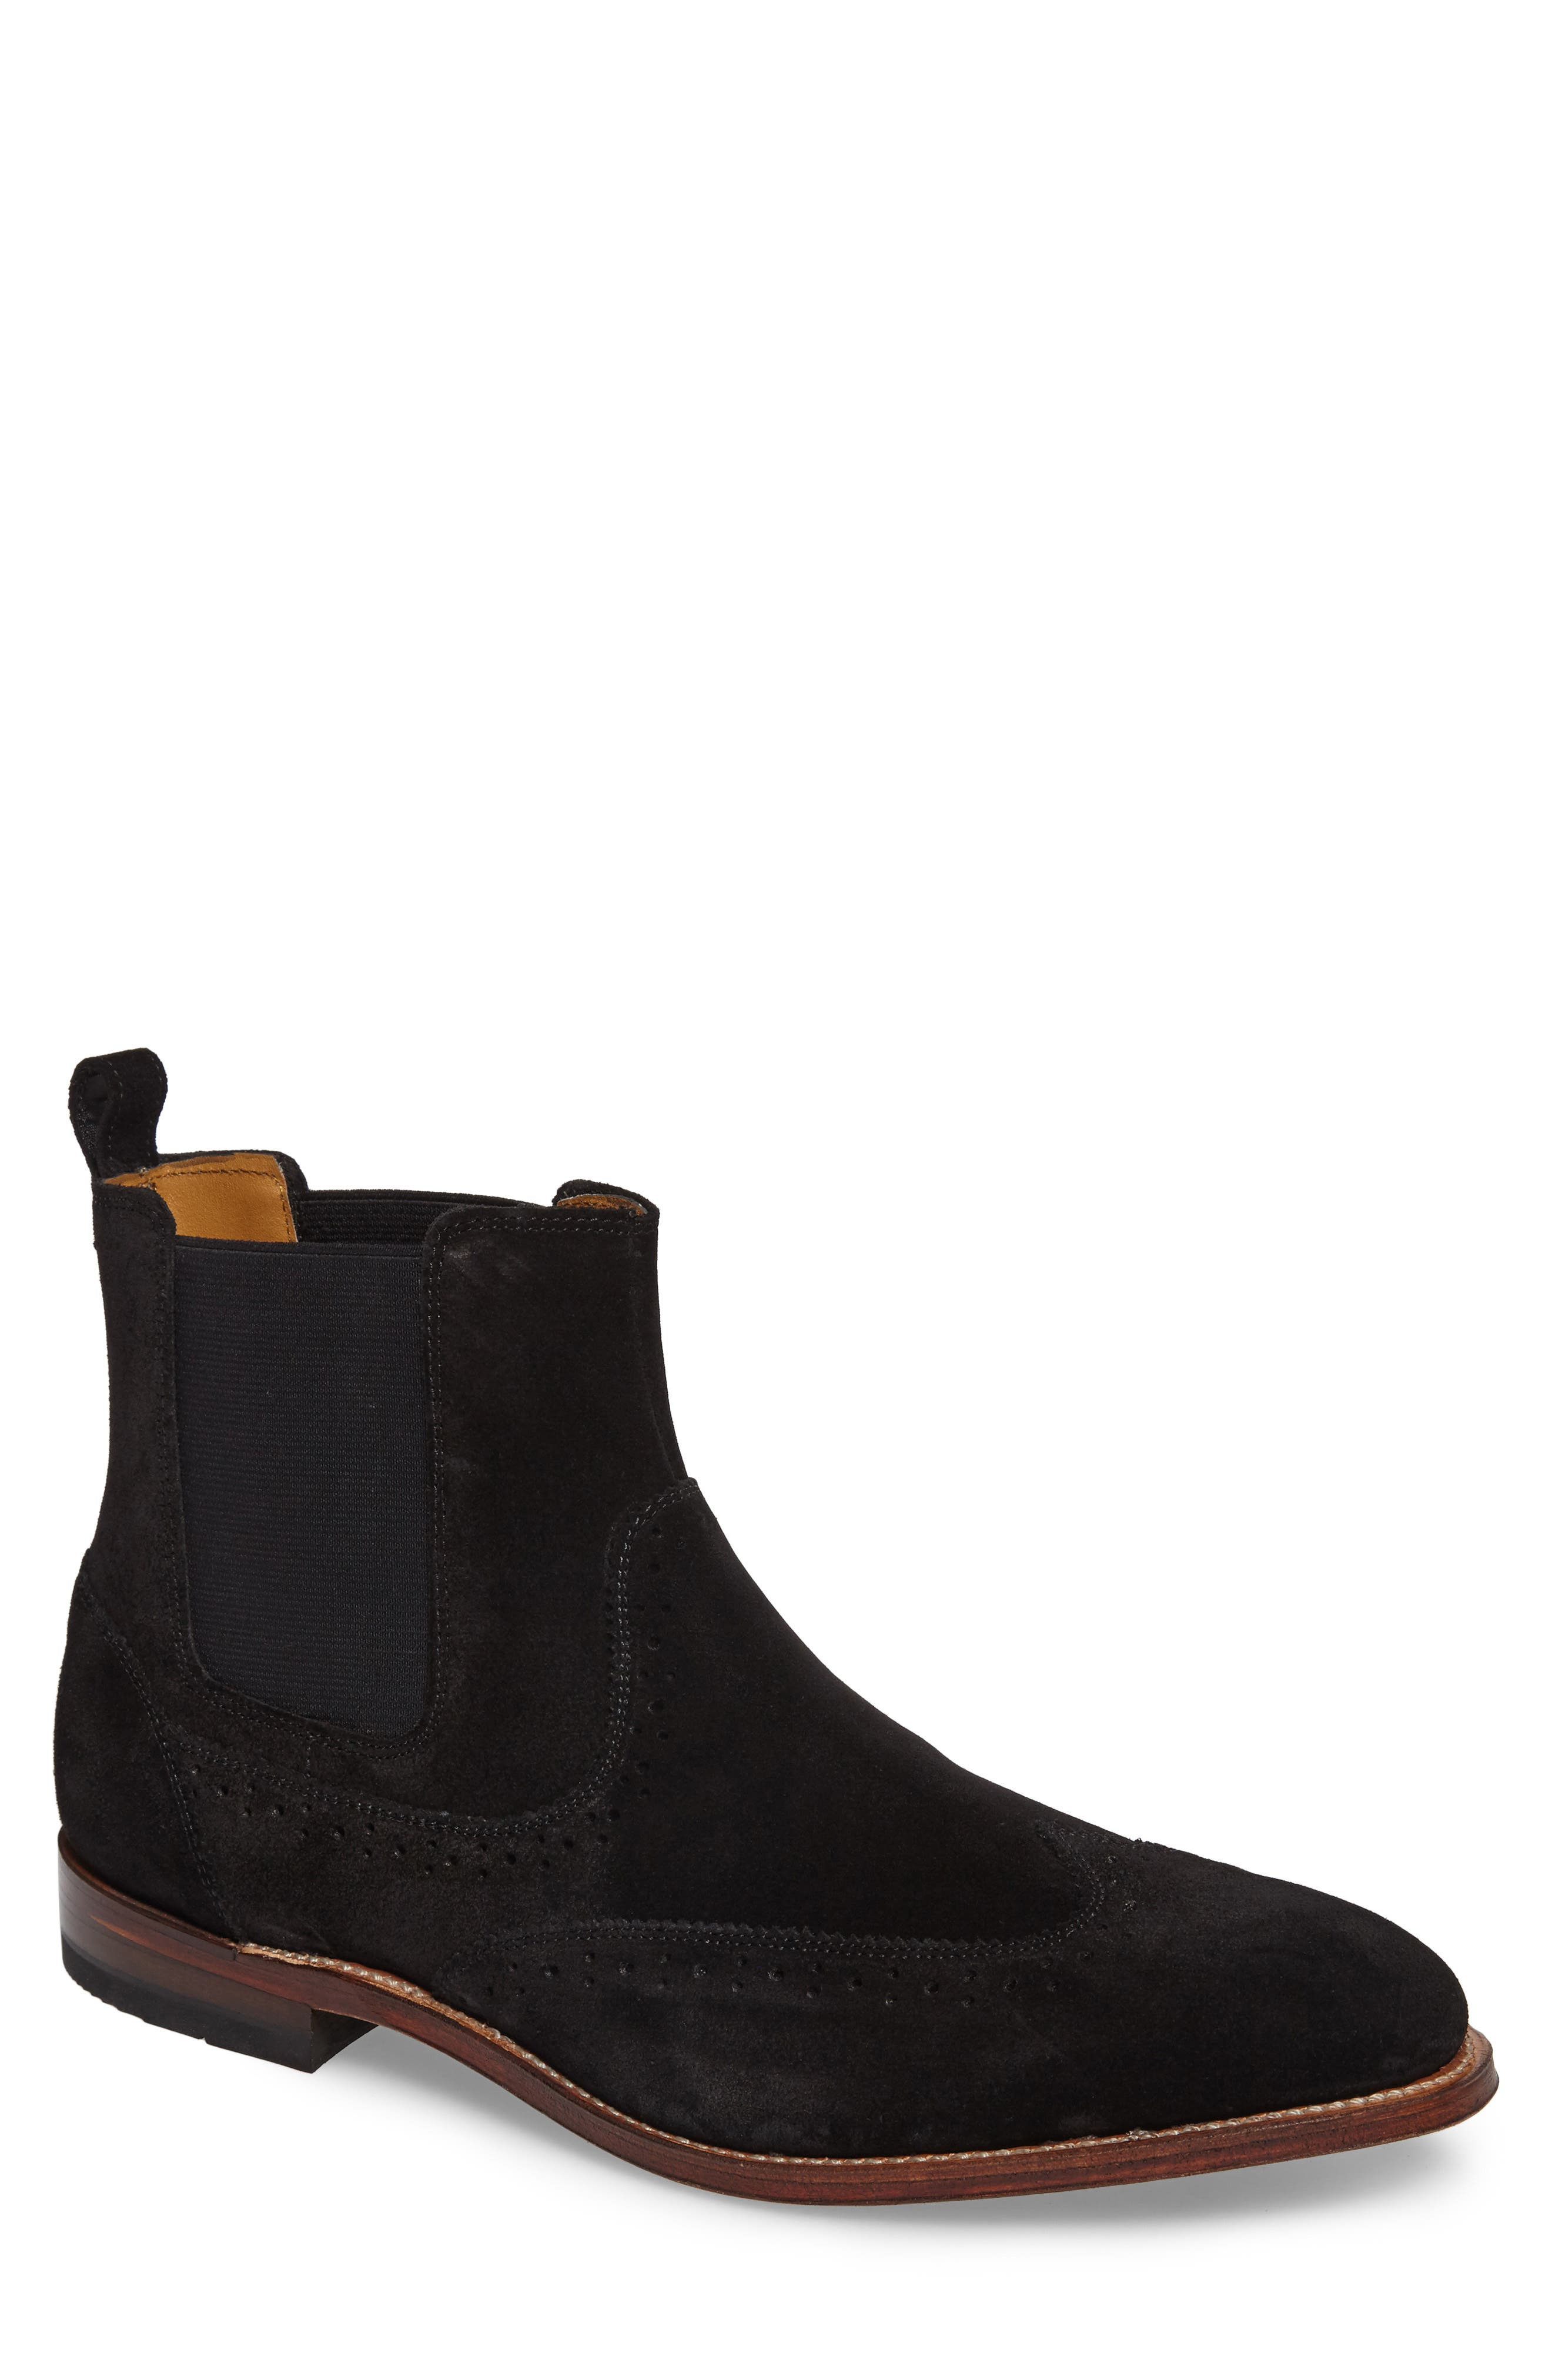 Stacy Adams Madison Ii Wingtip Chelsea Boot, Black